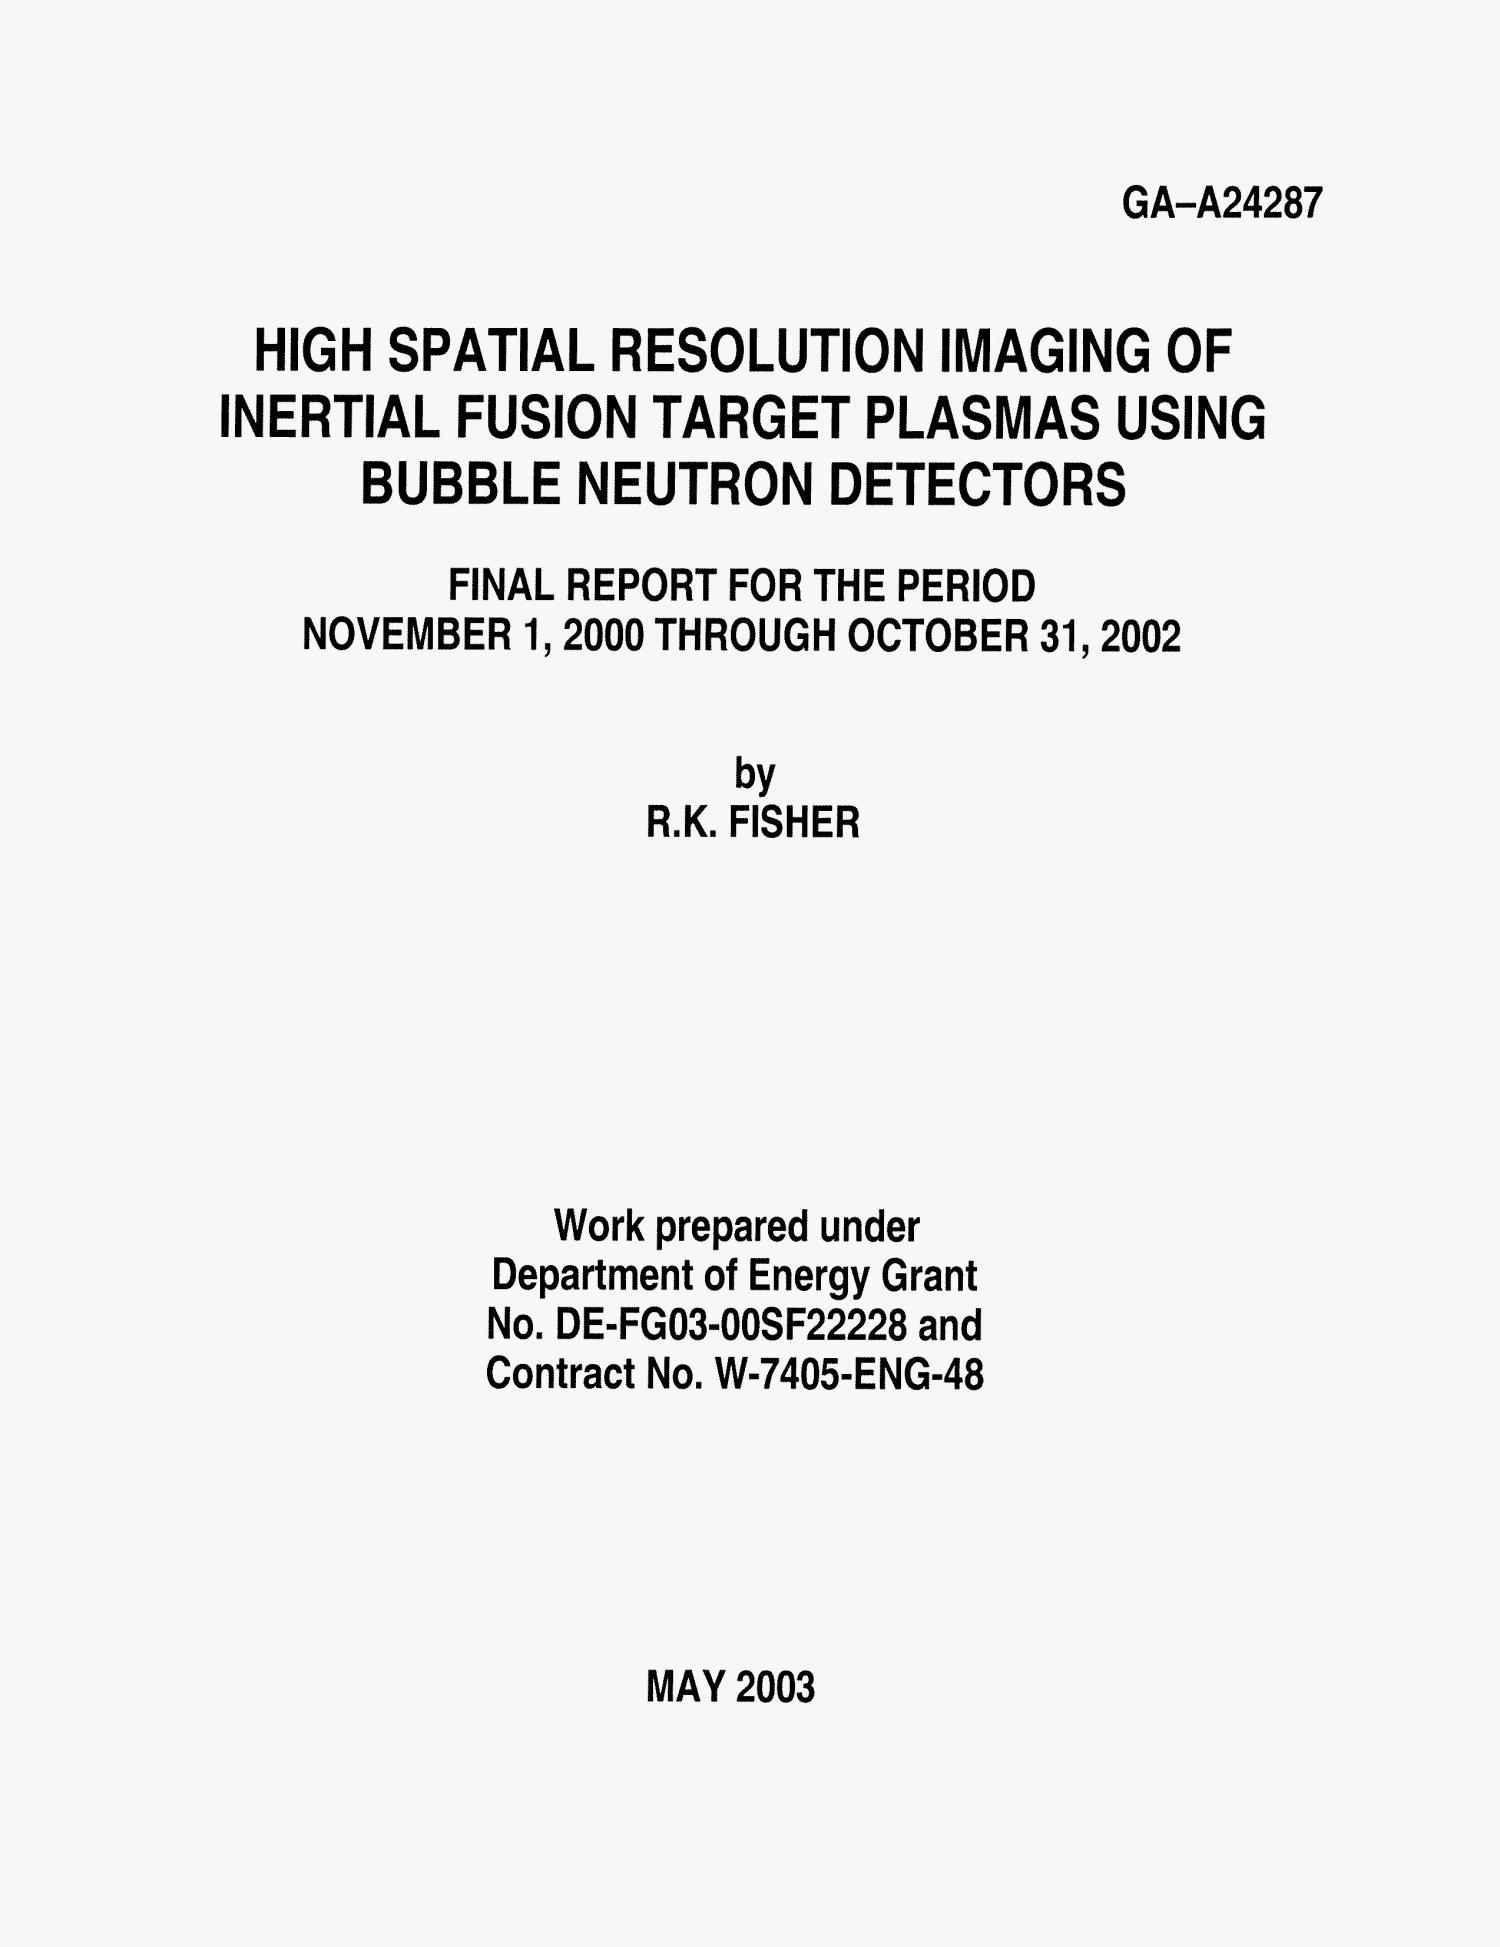 HIGH SPATIAL RESOLUTION IMAGING OF INERTIAL FUSION TARGET PLASMAS USING BUBBLE NEWTRON DETECTORS                                                                                                      [Sequence #]: 1 of 4